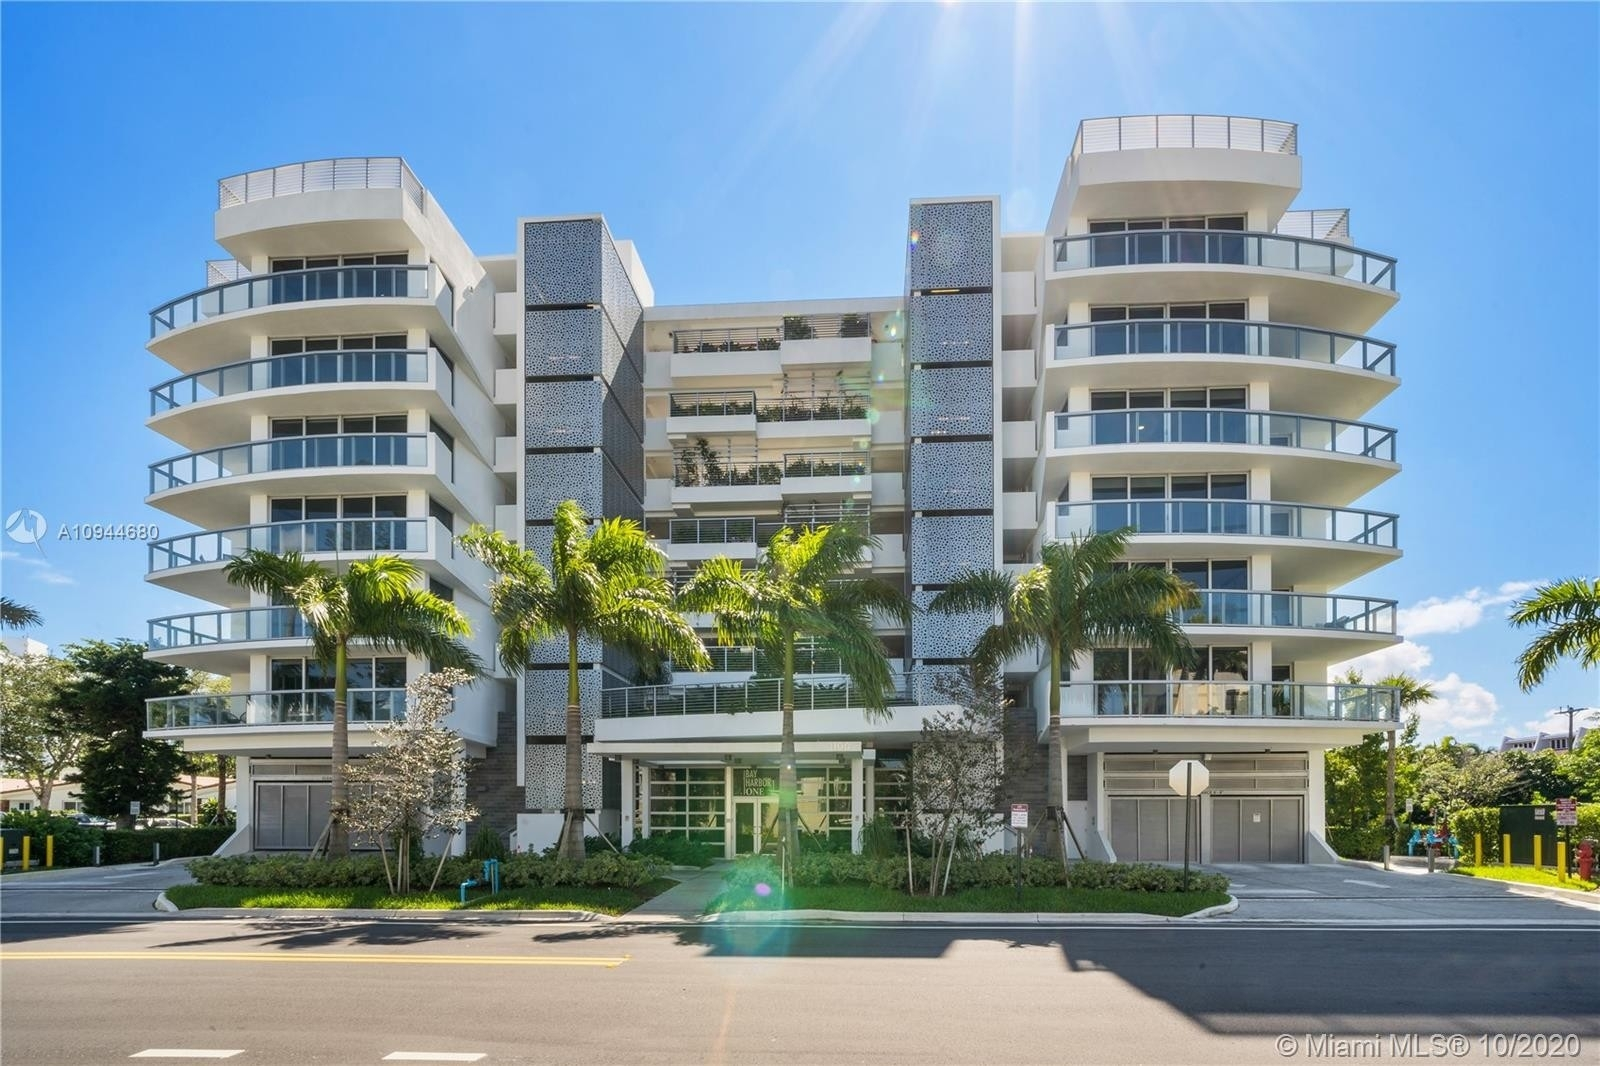 Condominium 為 特賣 在 1100 100th St , 504 Bay Harbor Islands, FL 33154